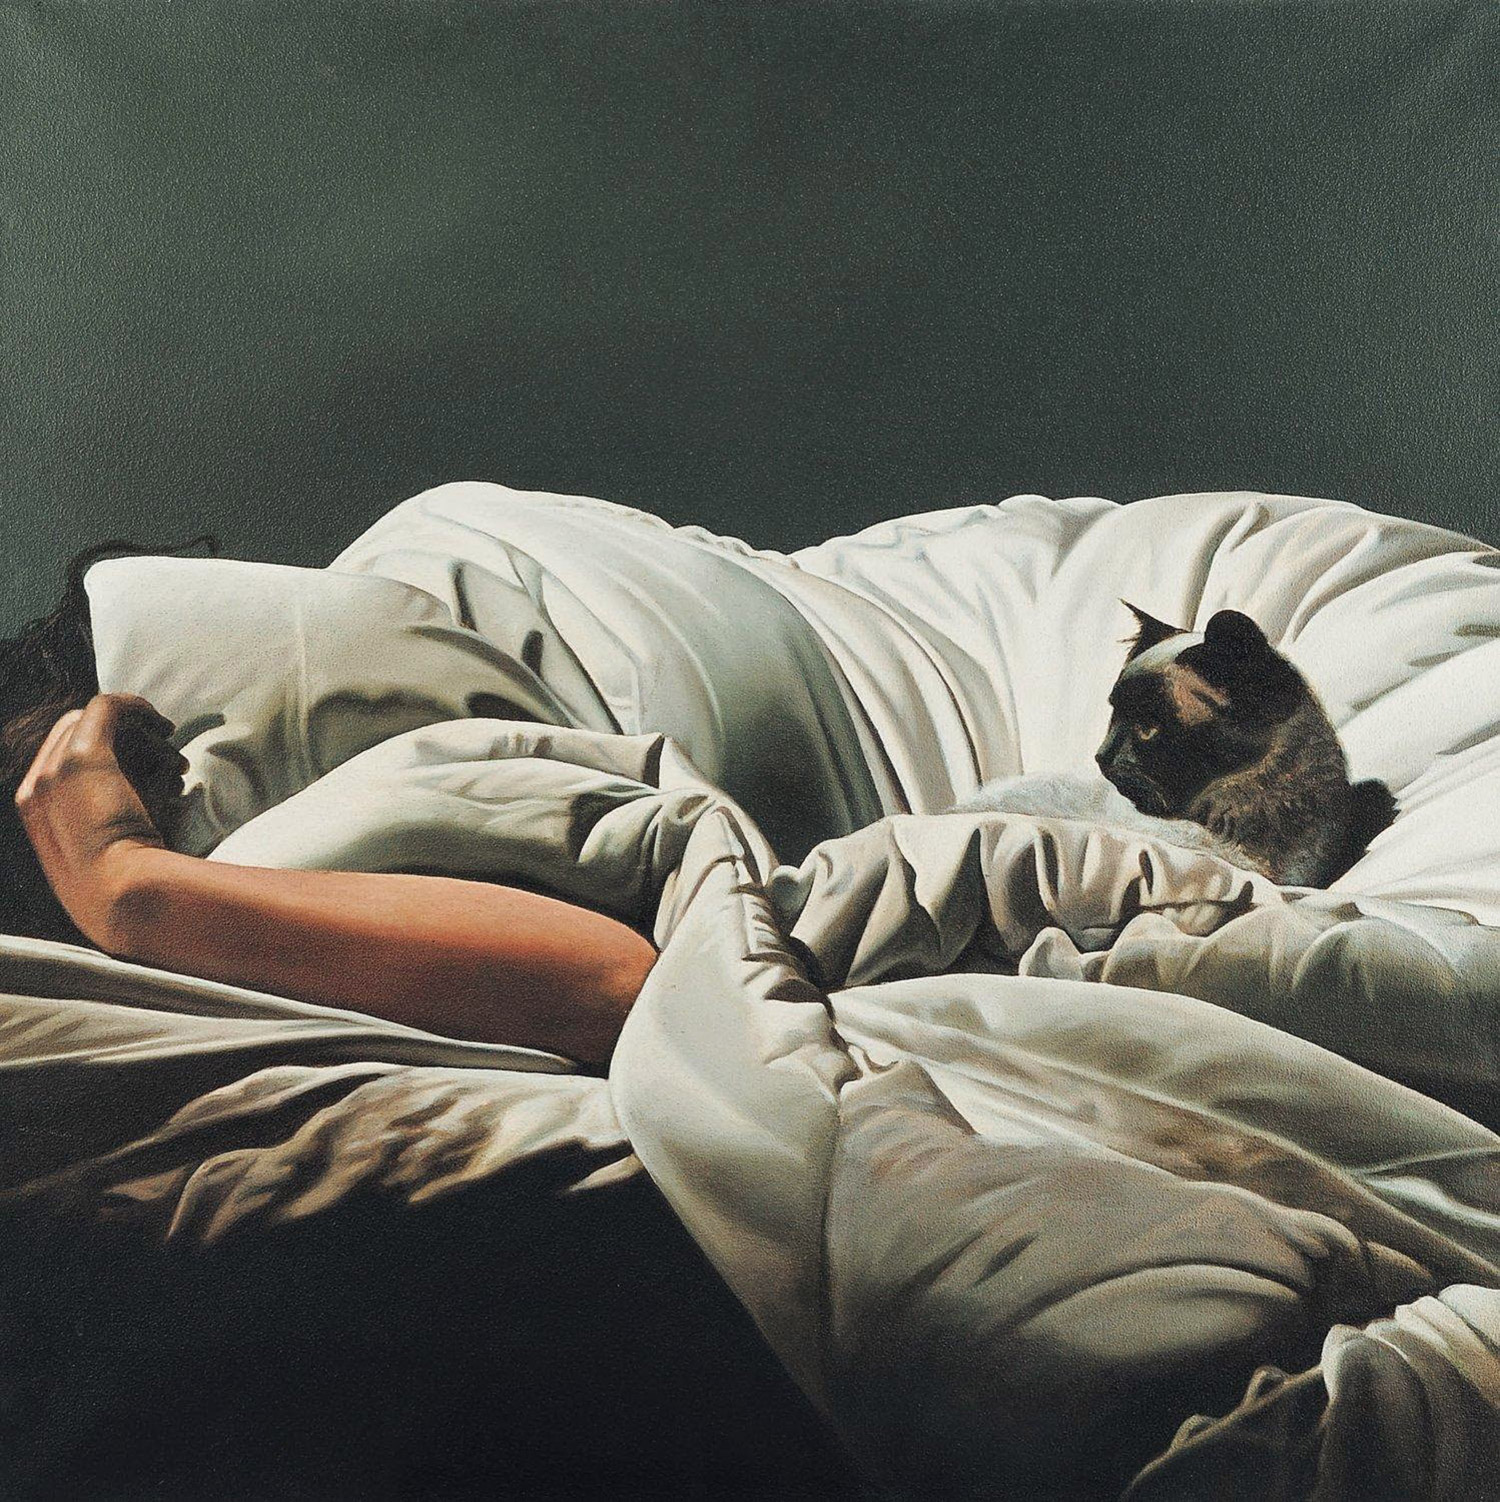 Gerard Schlosser - woman lying in bed with cat